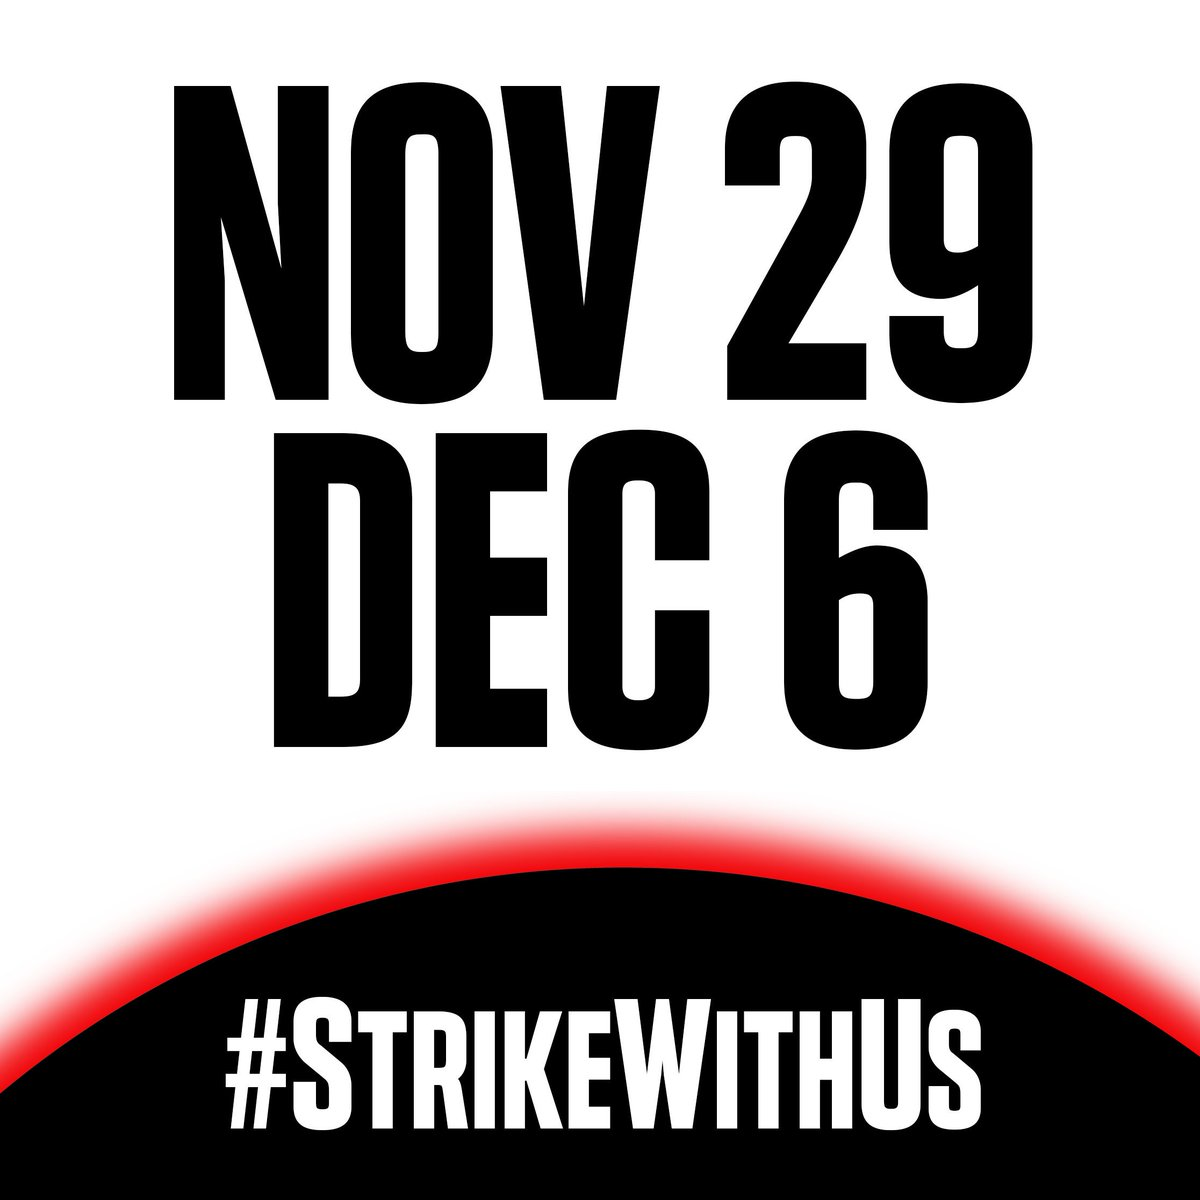 Back in September, 7 million people around the world walked out to demand real climate action from election officials.....and the movement is just getting started. Will you #StrikeWithUs this winter? strikewithus.org #ClimateStrike